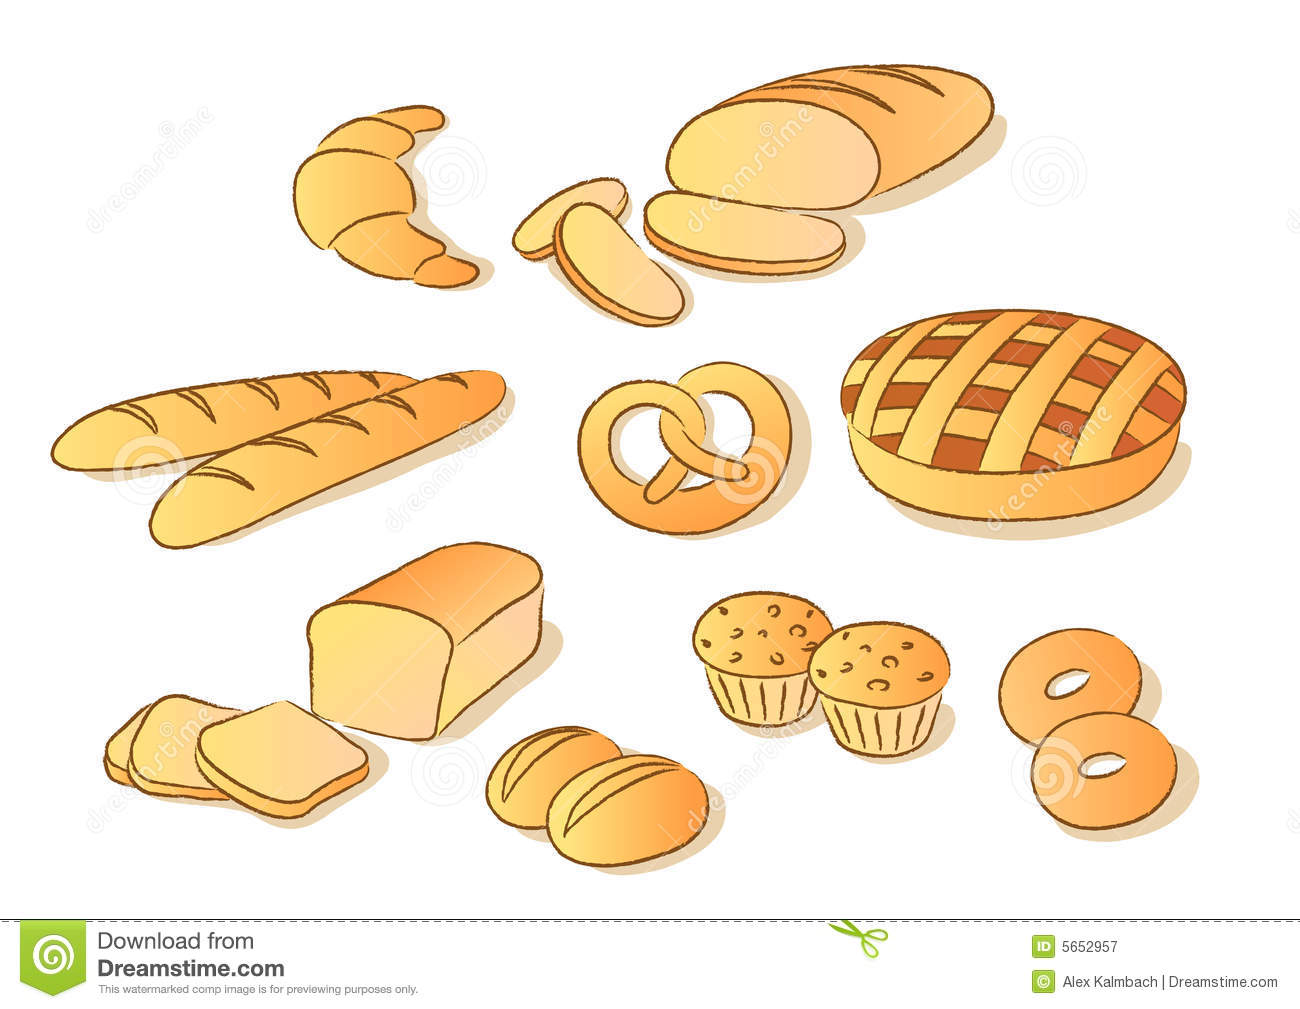 Bread clipart bakery Bread%20clipart Images Art Clipart Panda